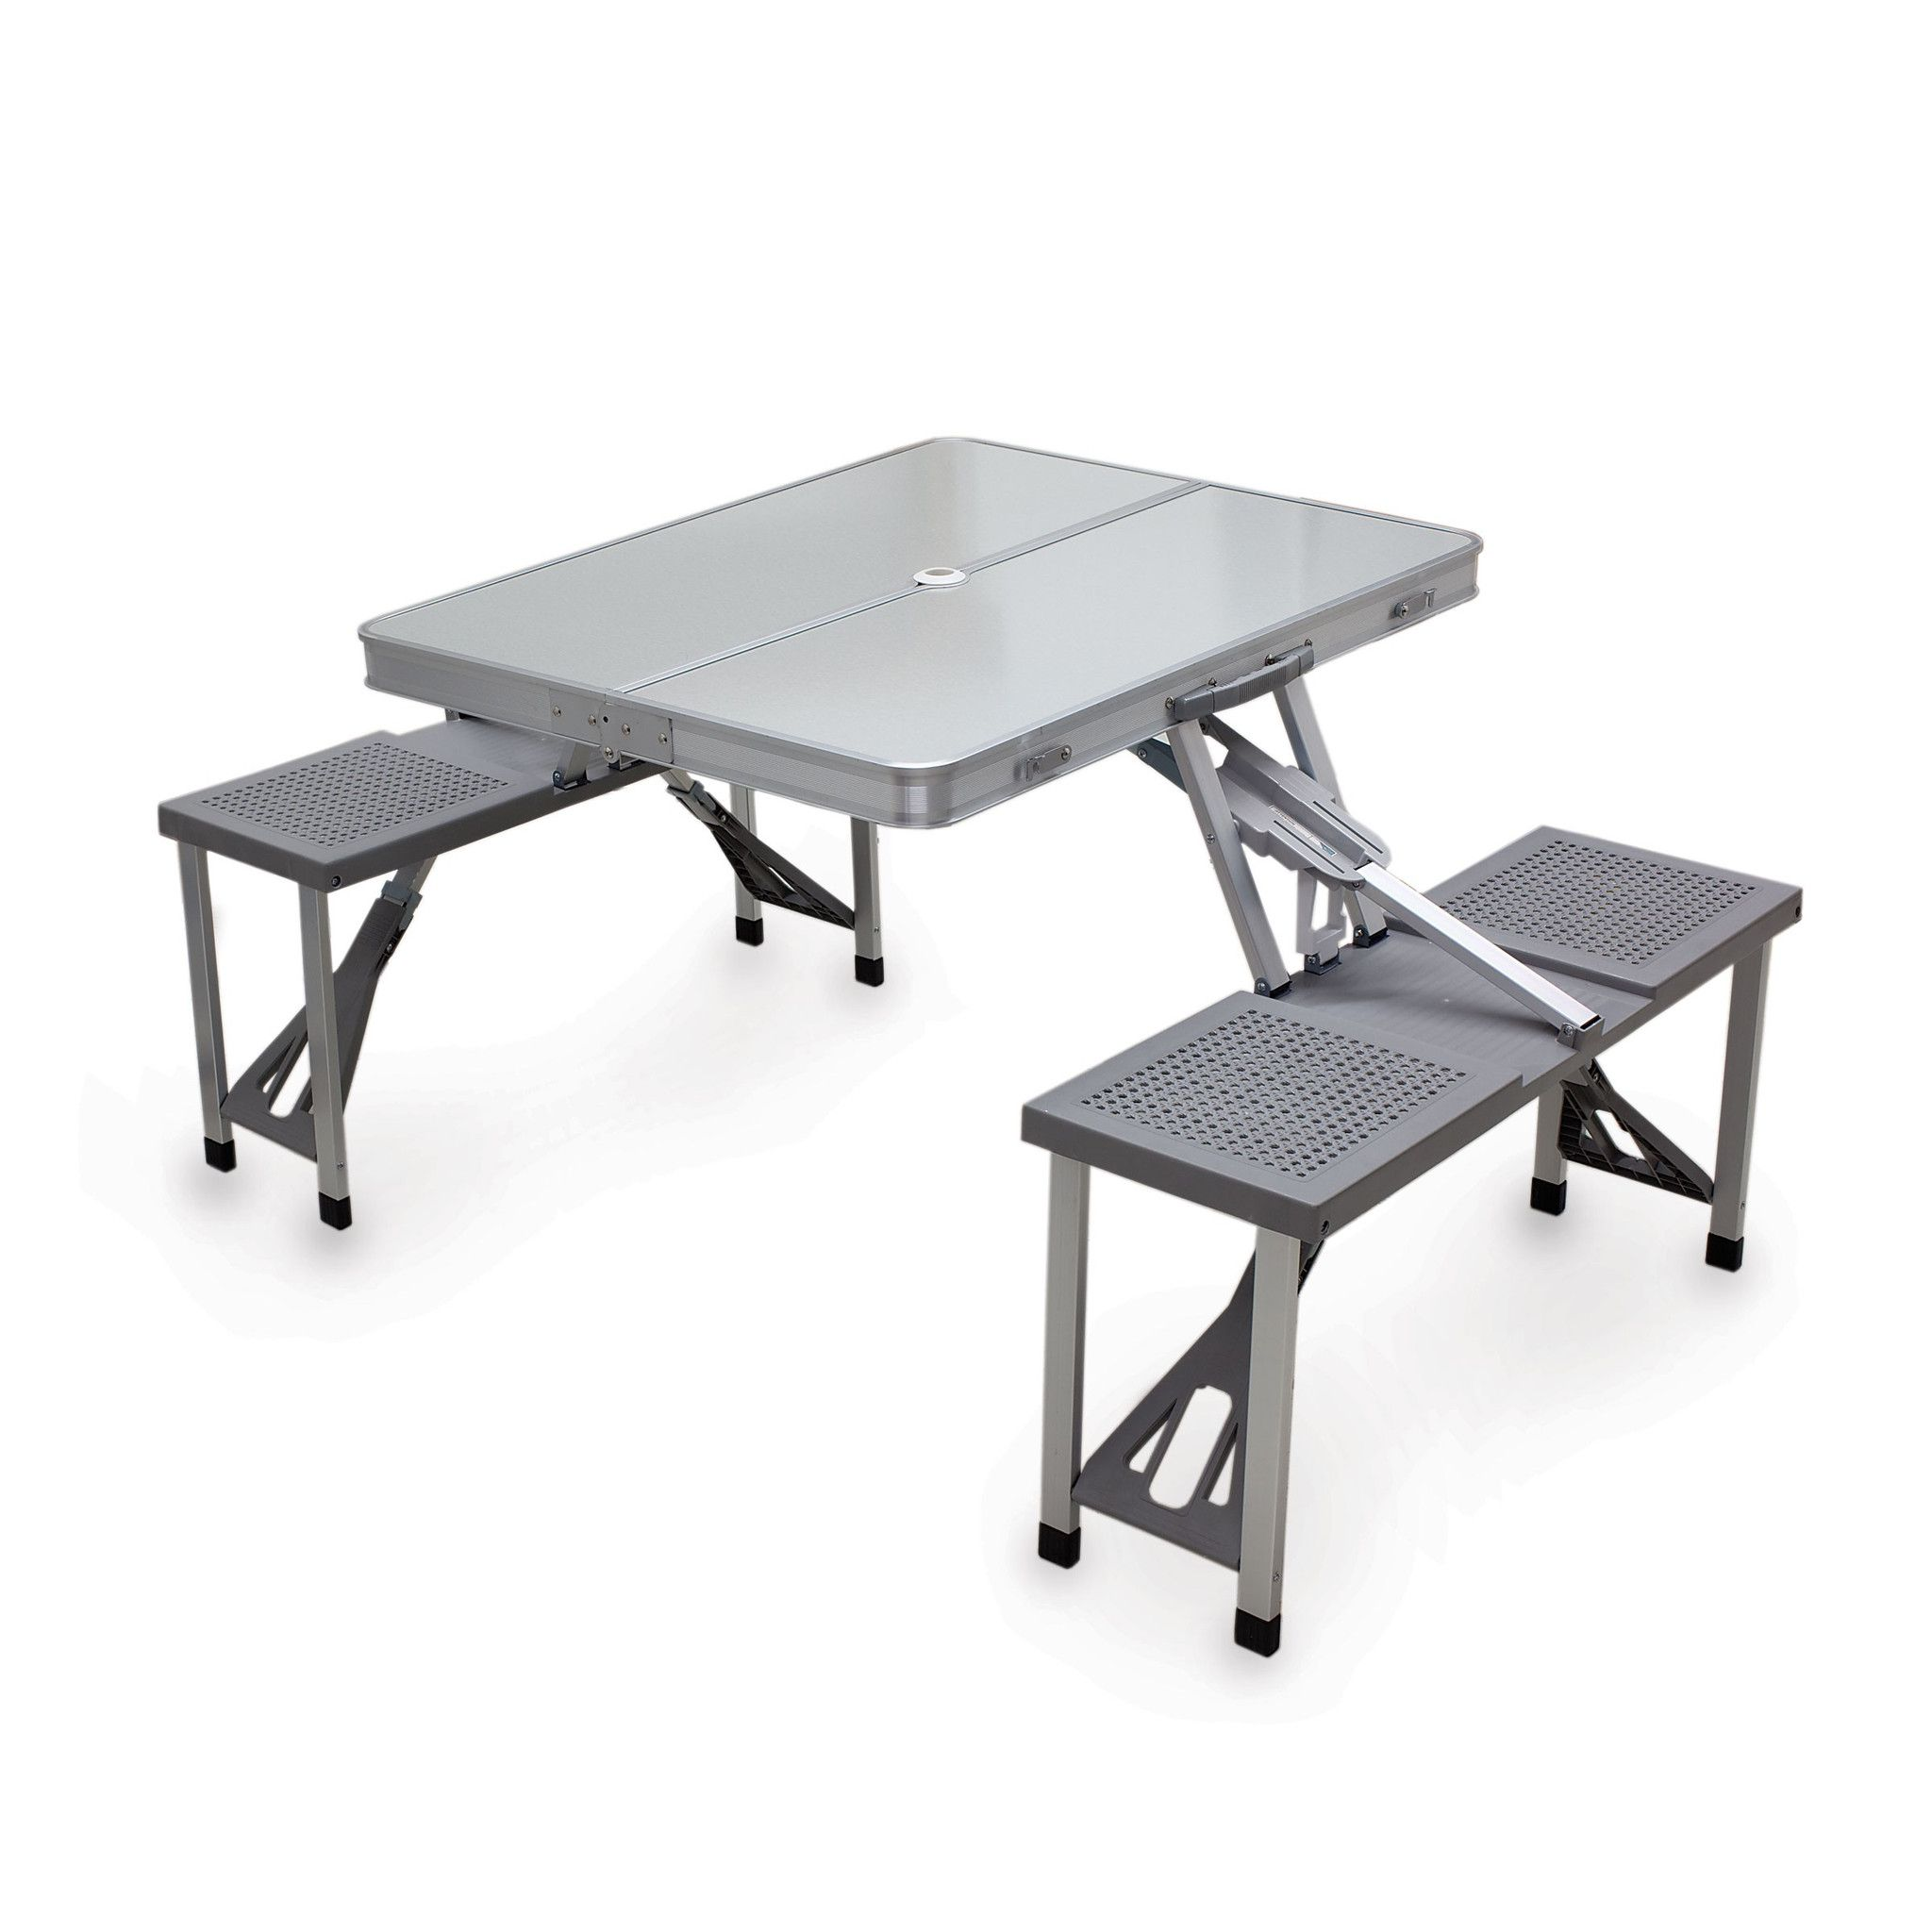 L Gant Table En Aluminium Id Es De Salon De Jardin # Salon De Jardin Avec Table Ovale